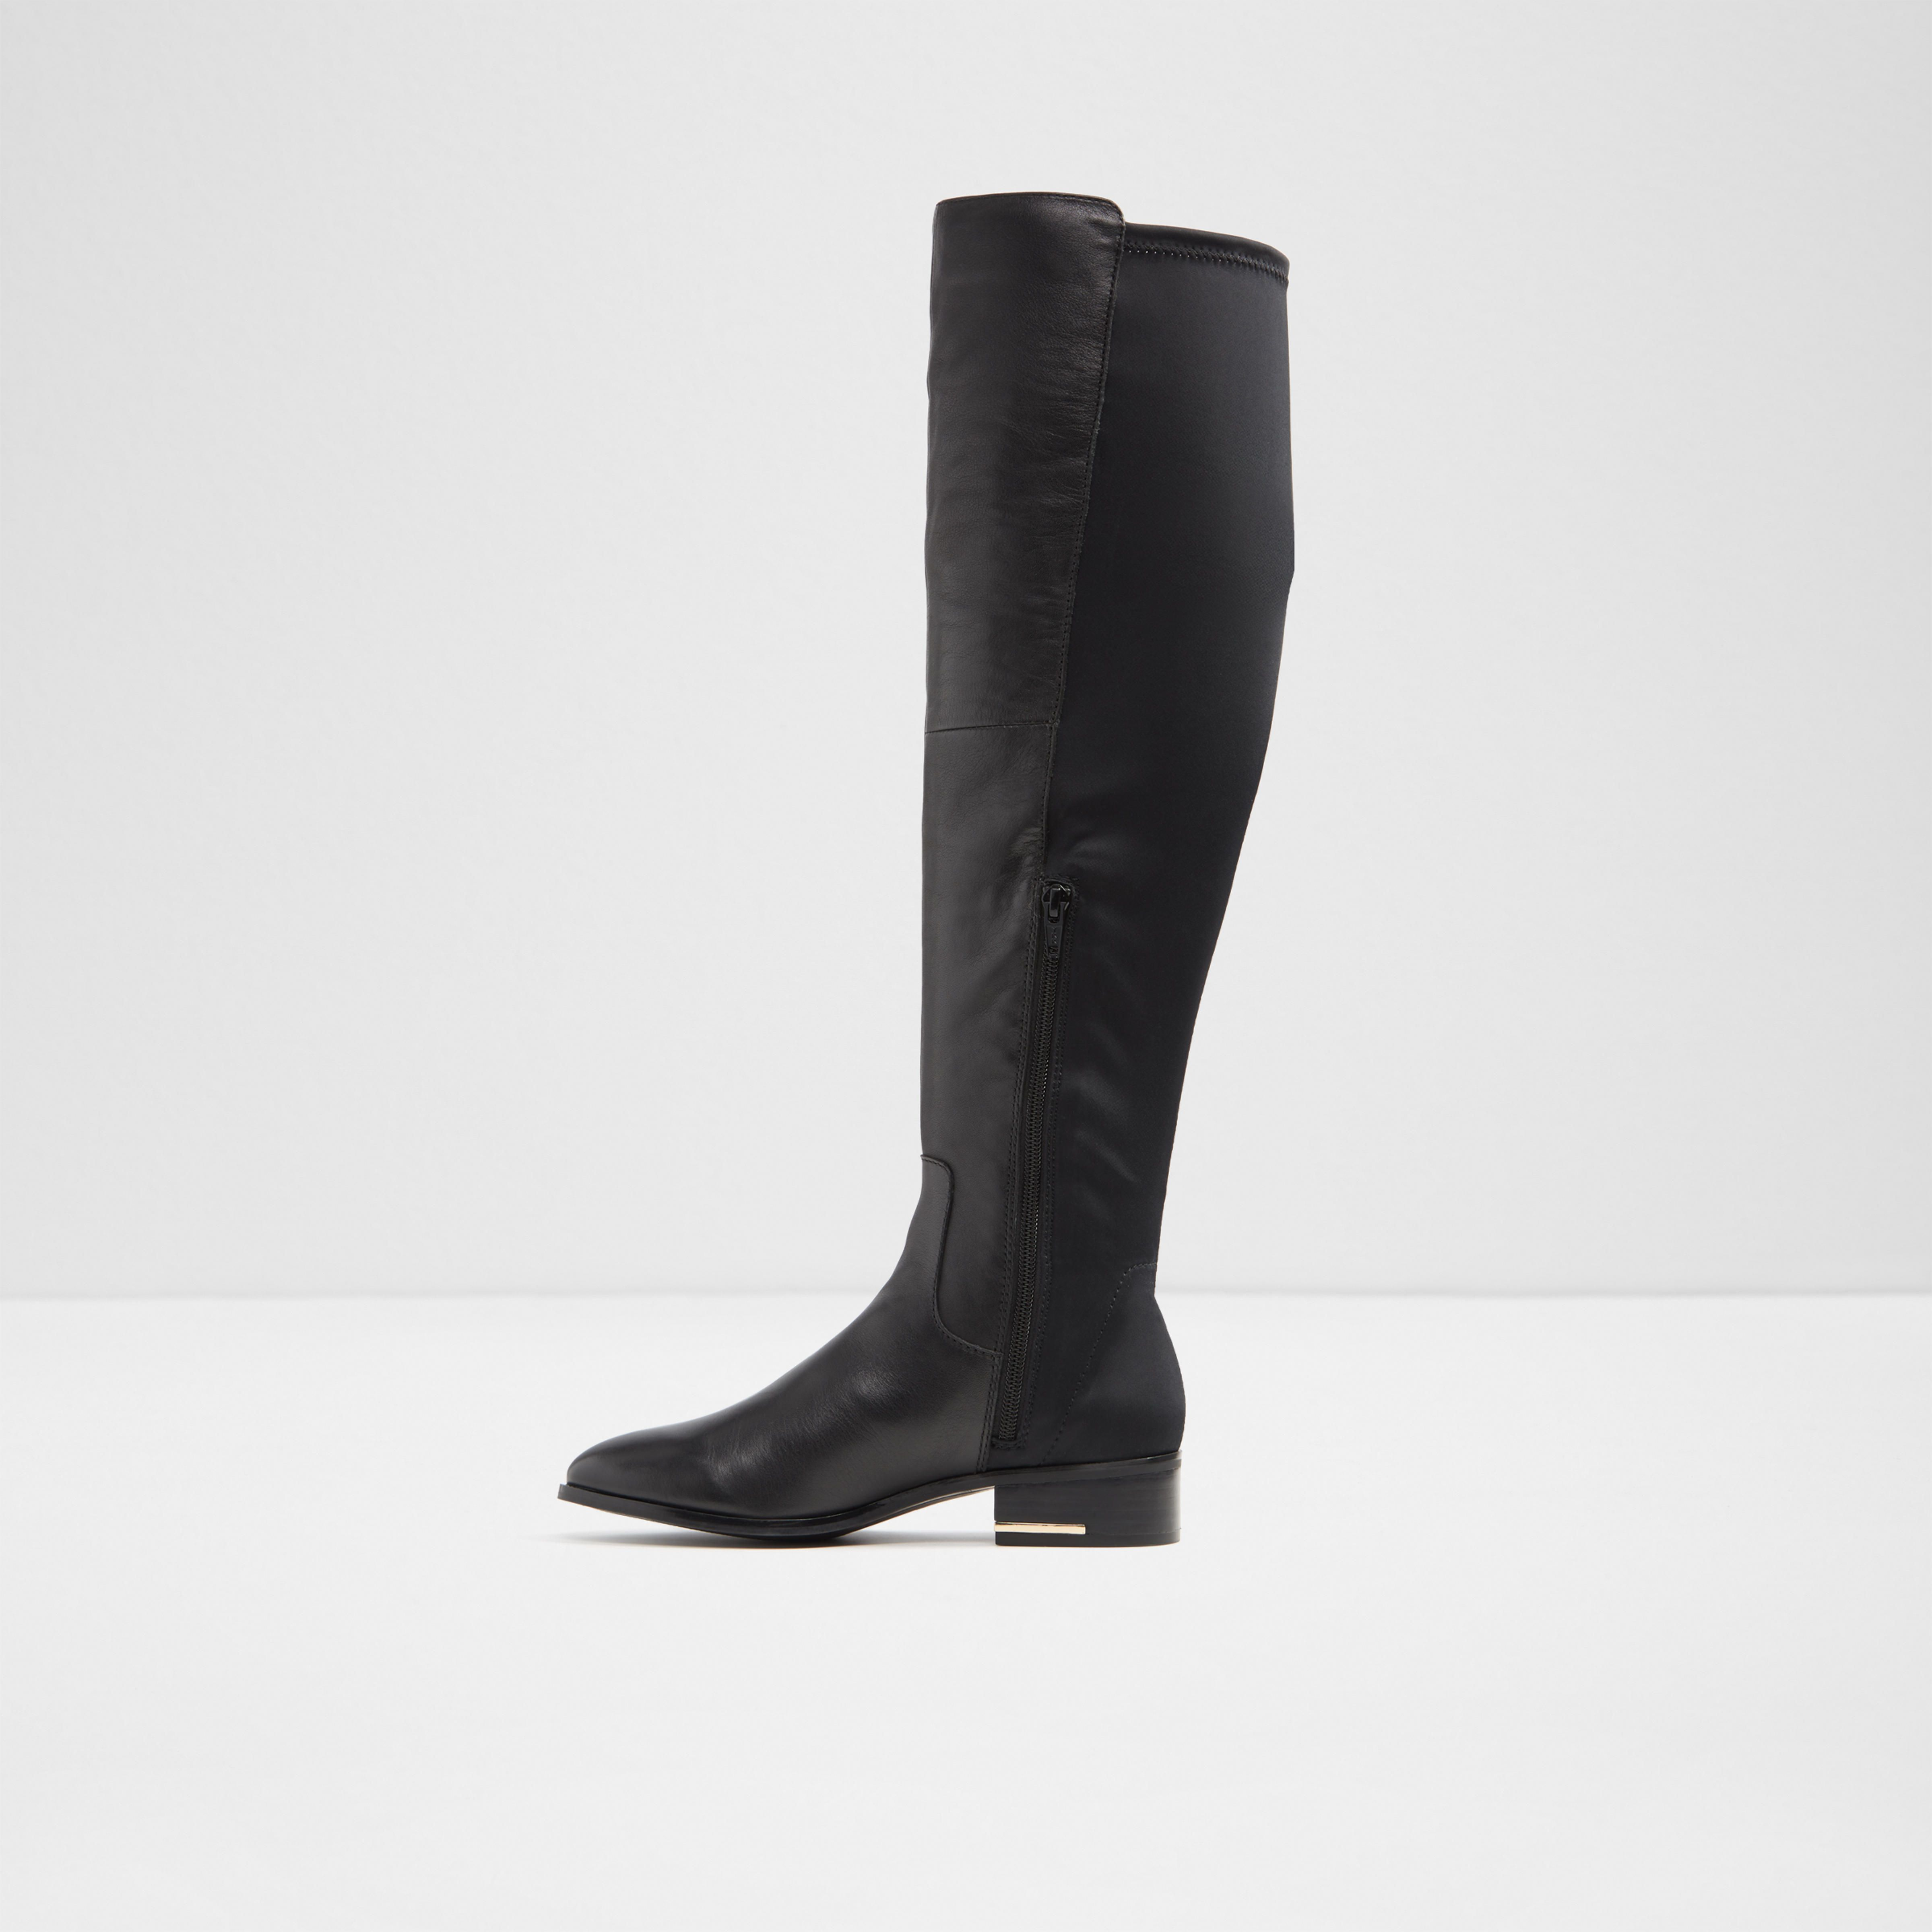 undefeated x quality products beauty Bivio Black Women's Over-the-knee boots | ALDO Canada ...